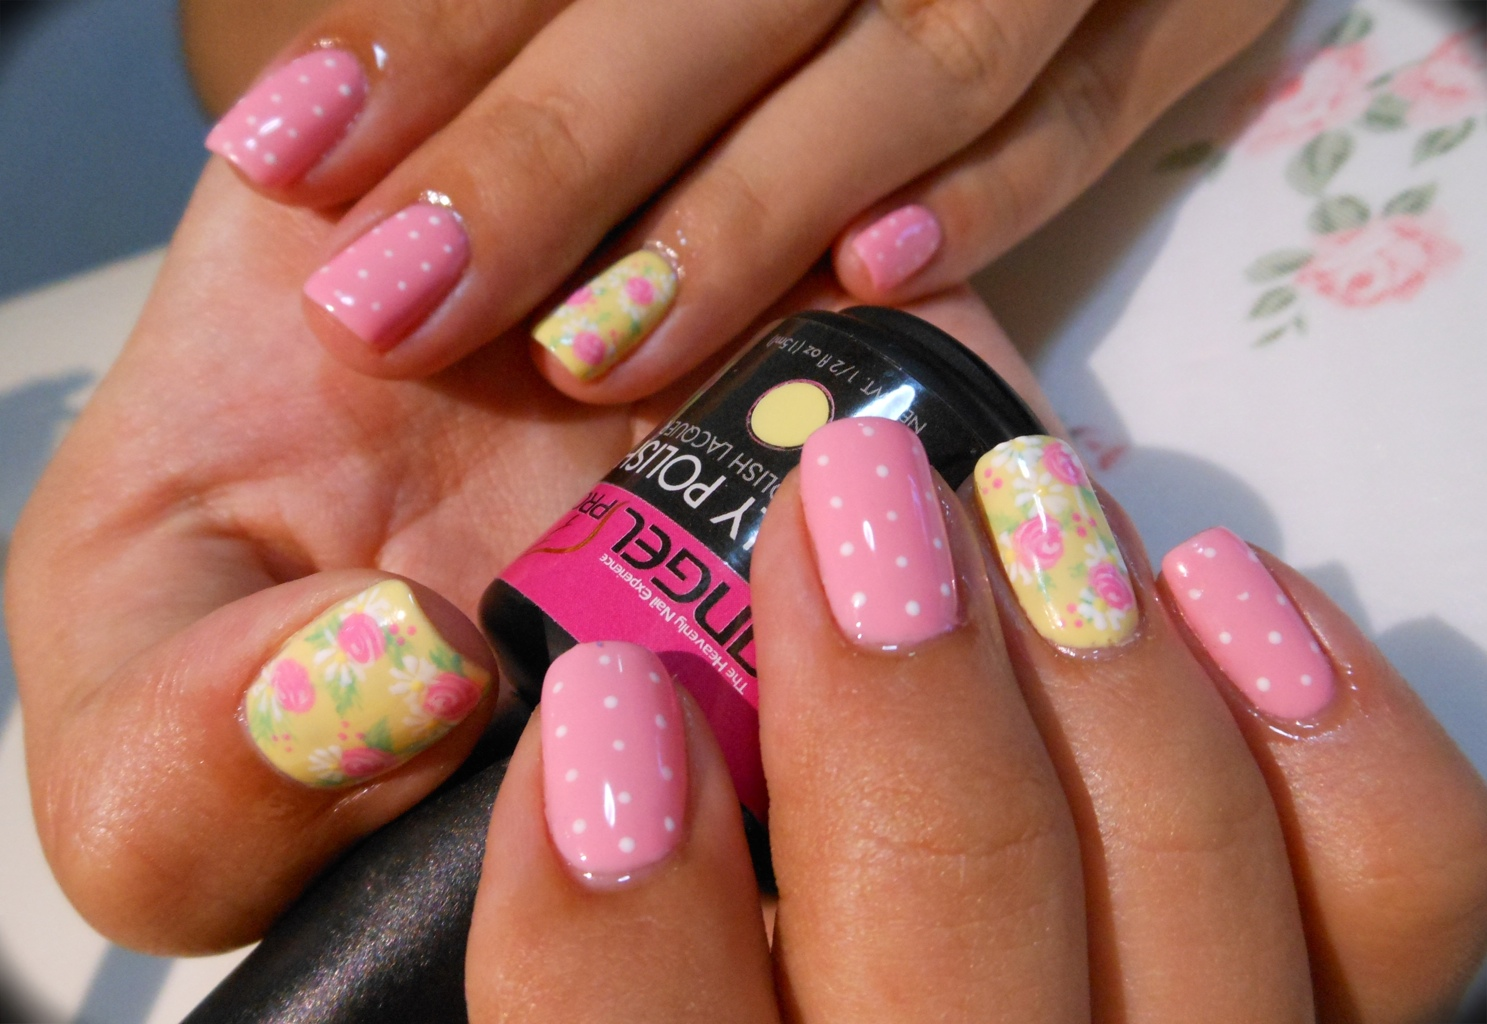 These pointy pink nail designs combine glitters on a few of the nails and white lace pattern on the remaining nails The sparkles are added in asymmetrical design which further makes them interesting